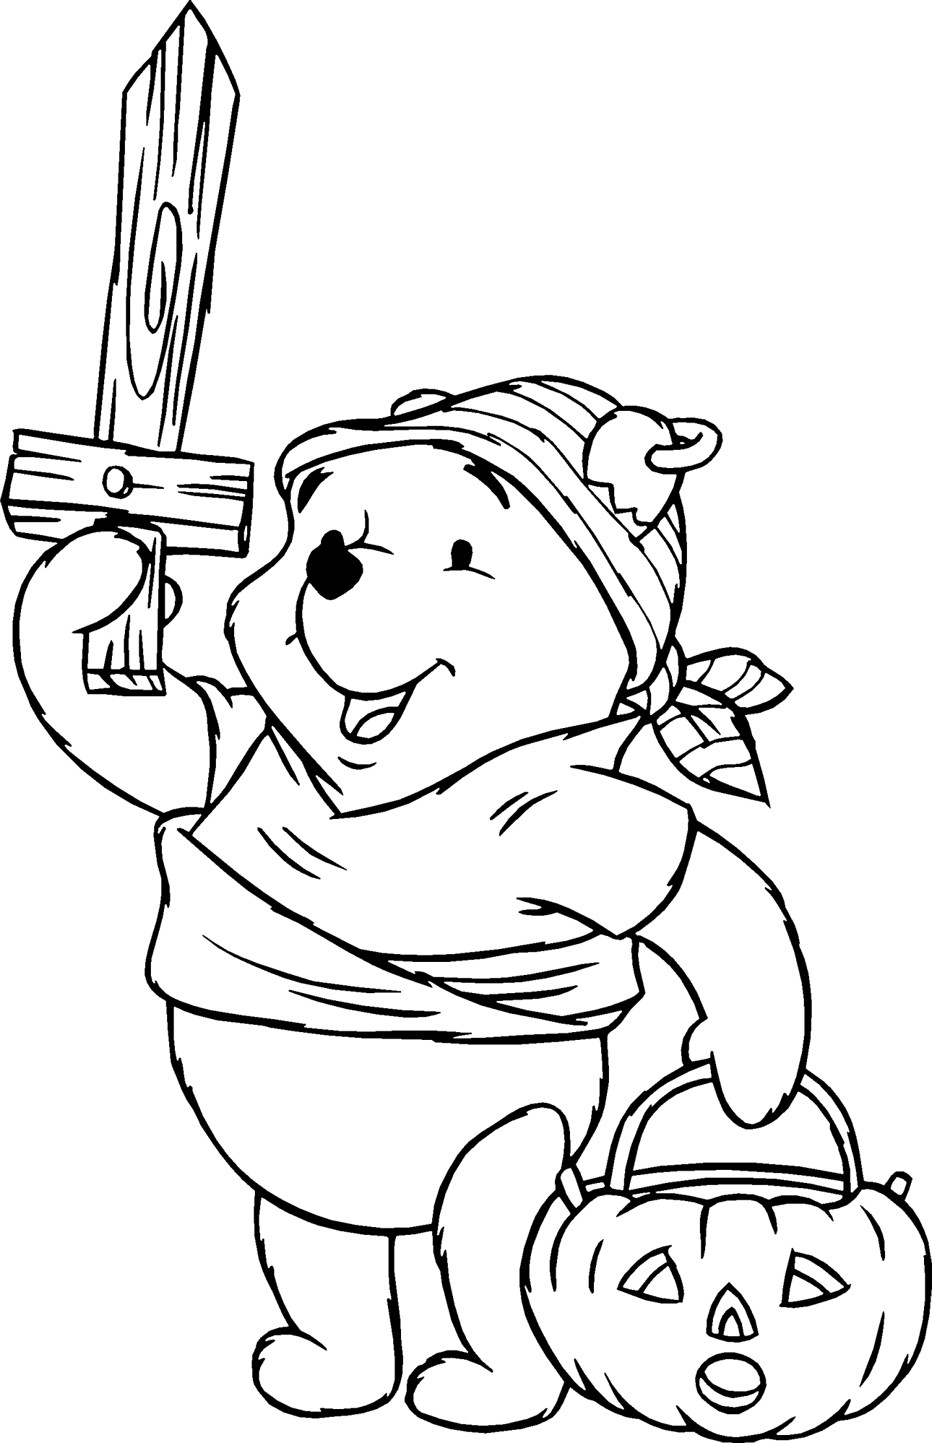 free coloring pages for kids 24 free printable halloween coloring pages for kids for free coloring kids pages